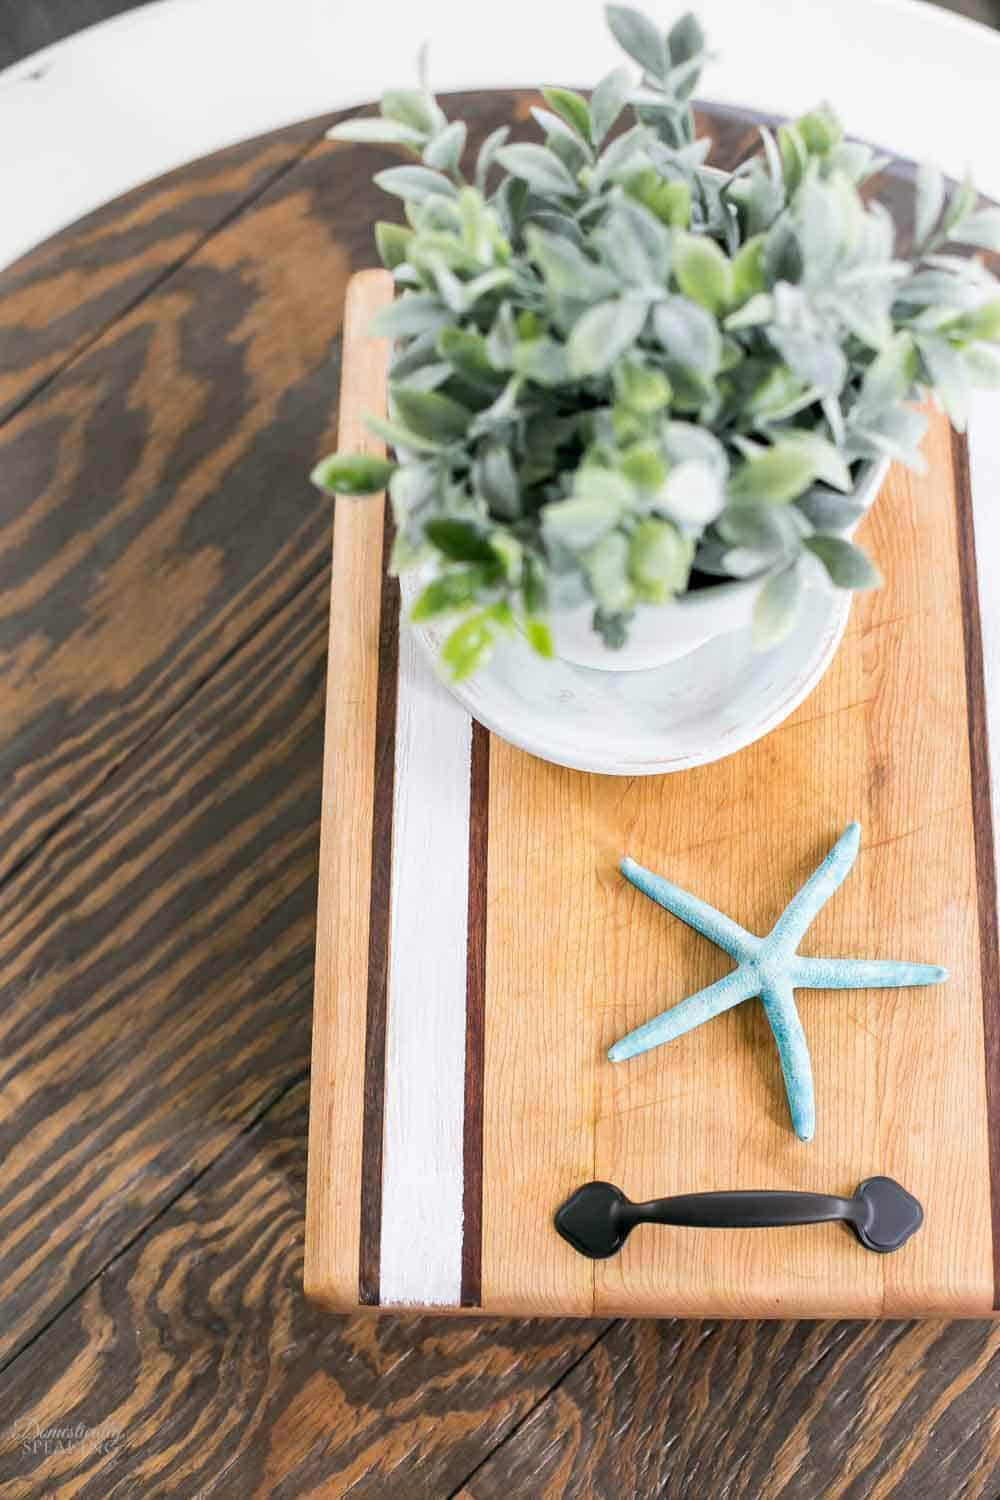 Painting a cutting board from the thrift store and upcycling it into a tray